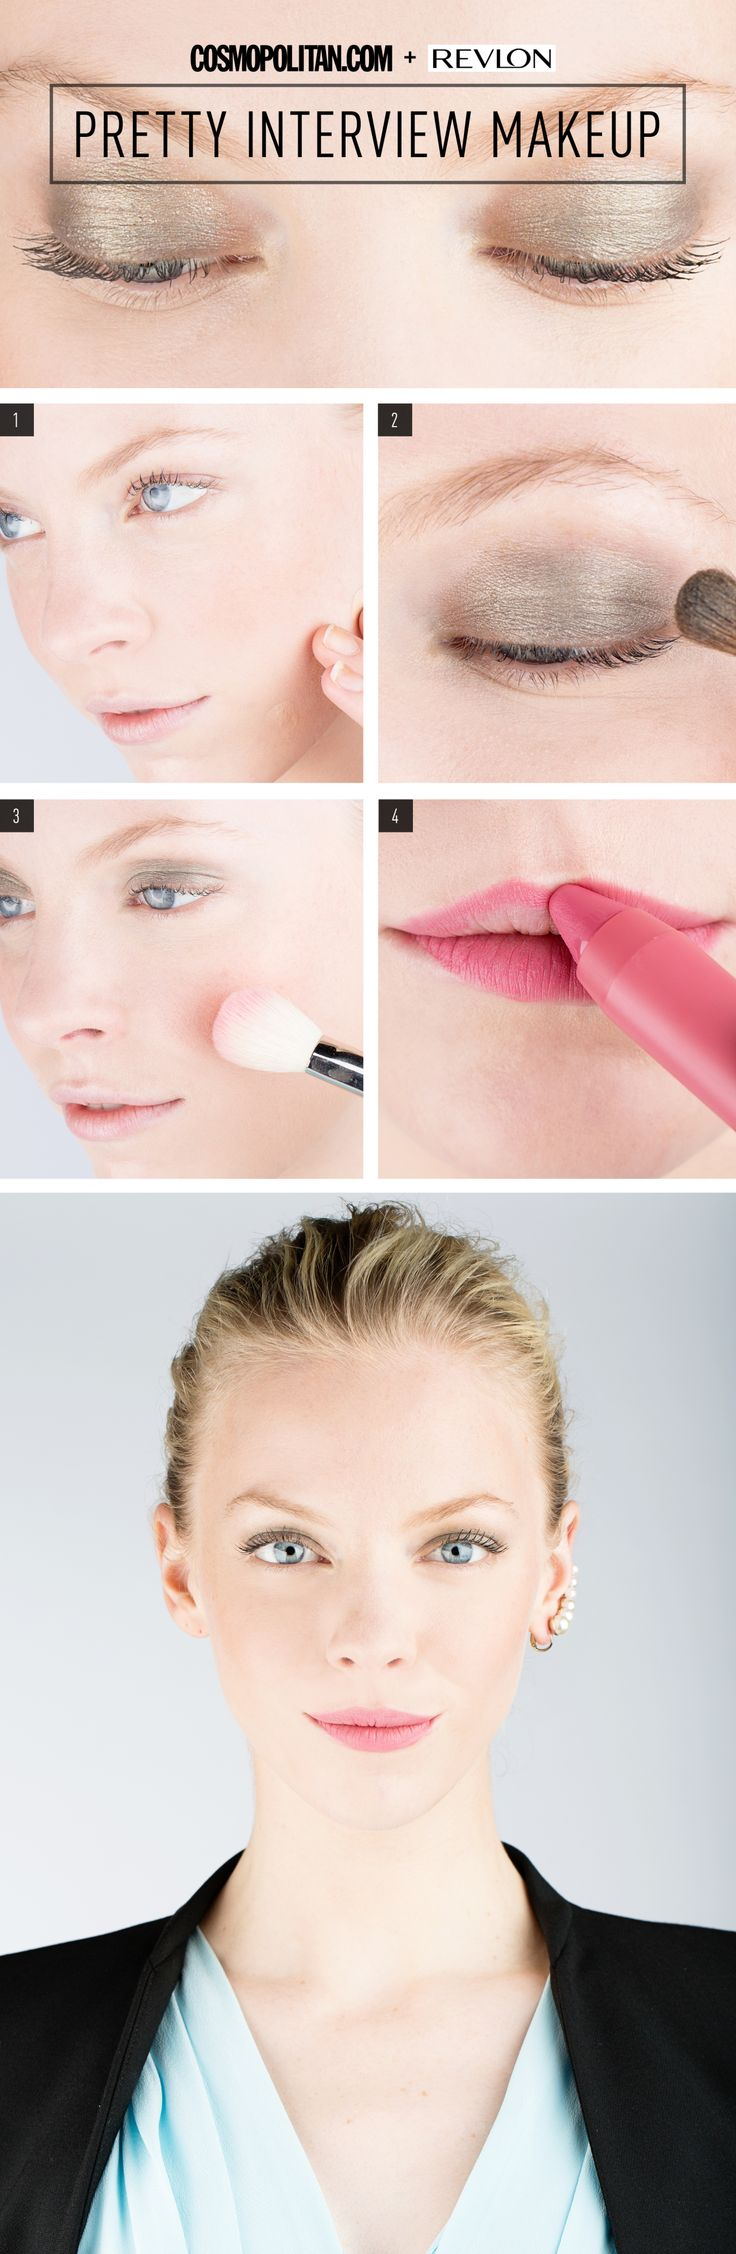 INTERVIEW MAKEUP TUTORIAL: There's no doubt you'll land the job with this natural and pretty makeup. Here, Makeup artist Gigi Shaker shows you exactly how to create the perfect interview look that's pretty yet professional. All you need to create this DIY look for work and interviews is foundation, bronze eyeshadow light pink blush, and a pink lip color. Click through for the full tutorial.